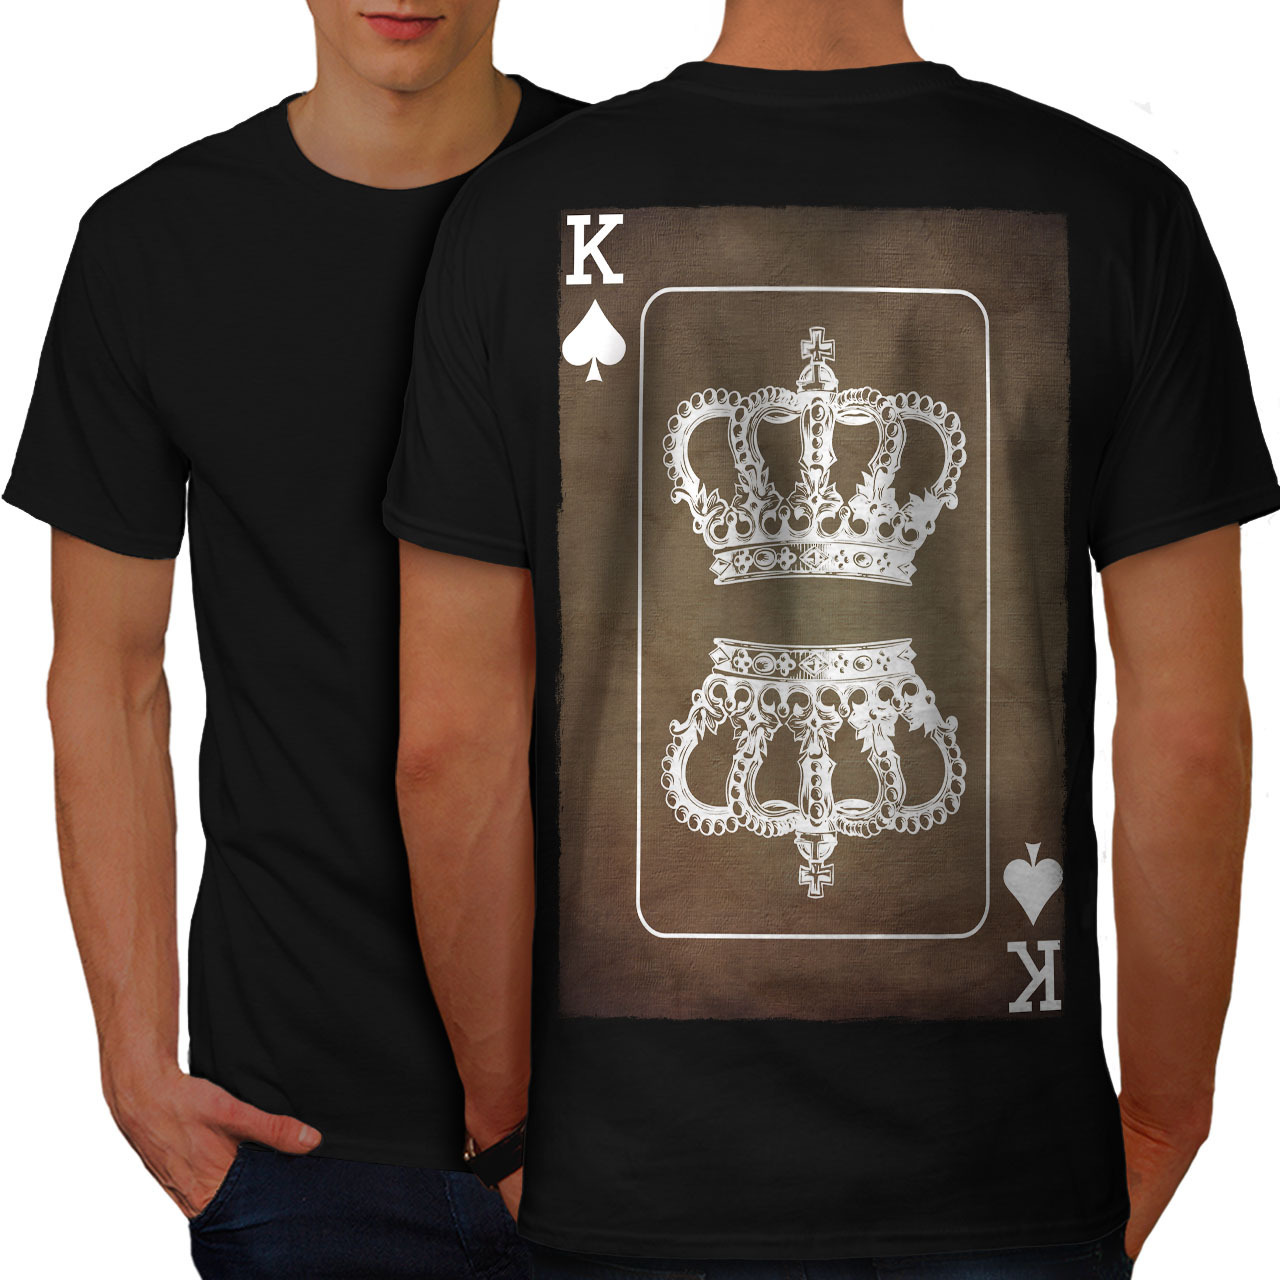 Primary image for Royal Crown Game Shirt King Card Men T-shirt Back